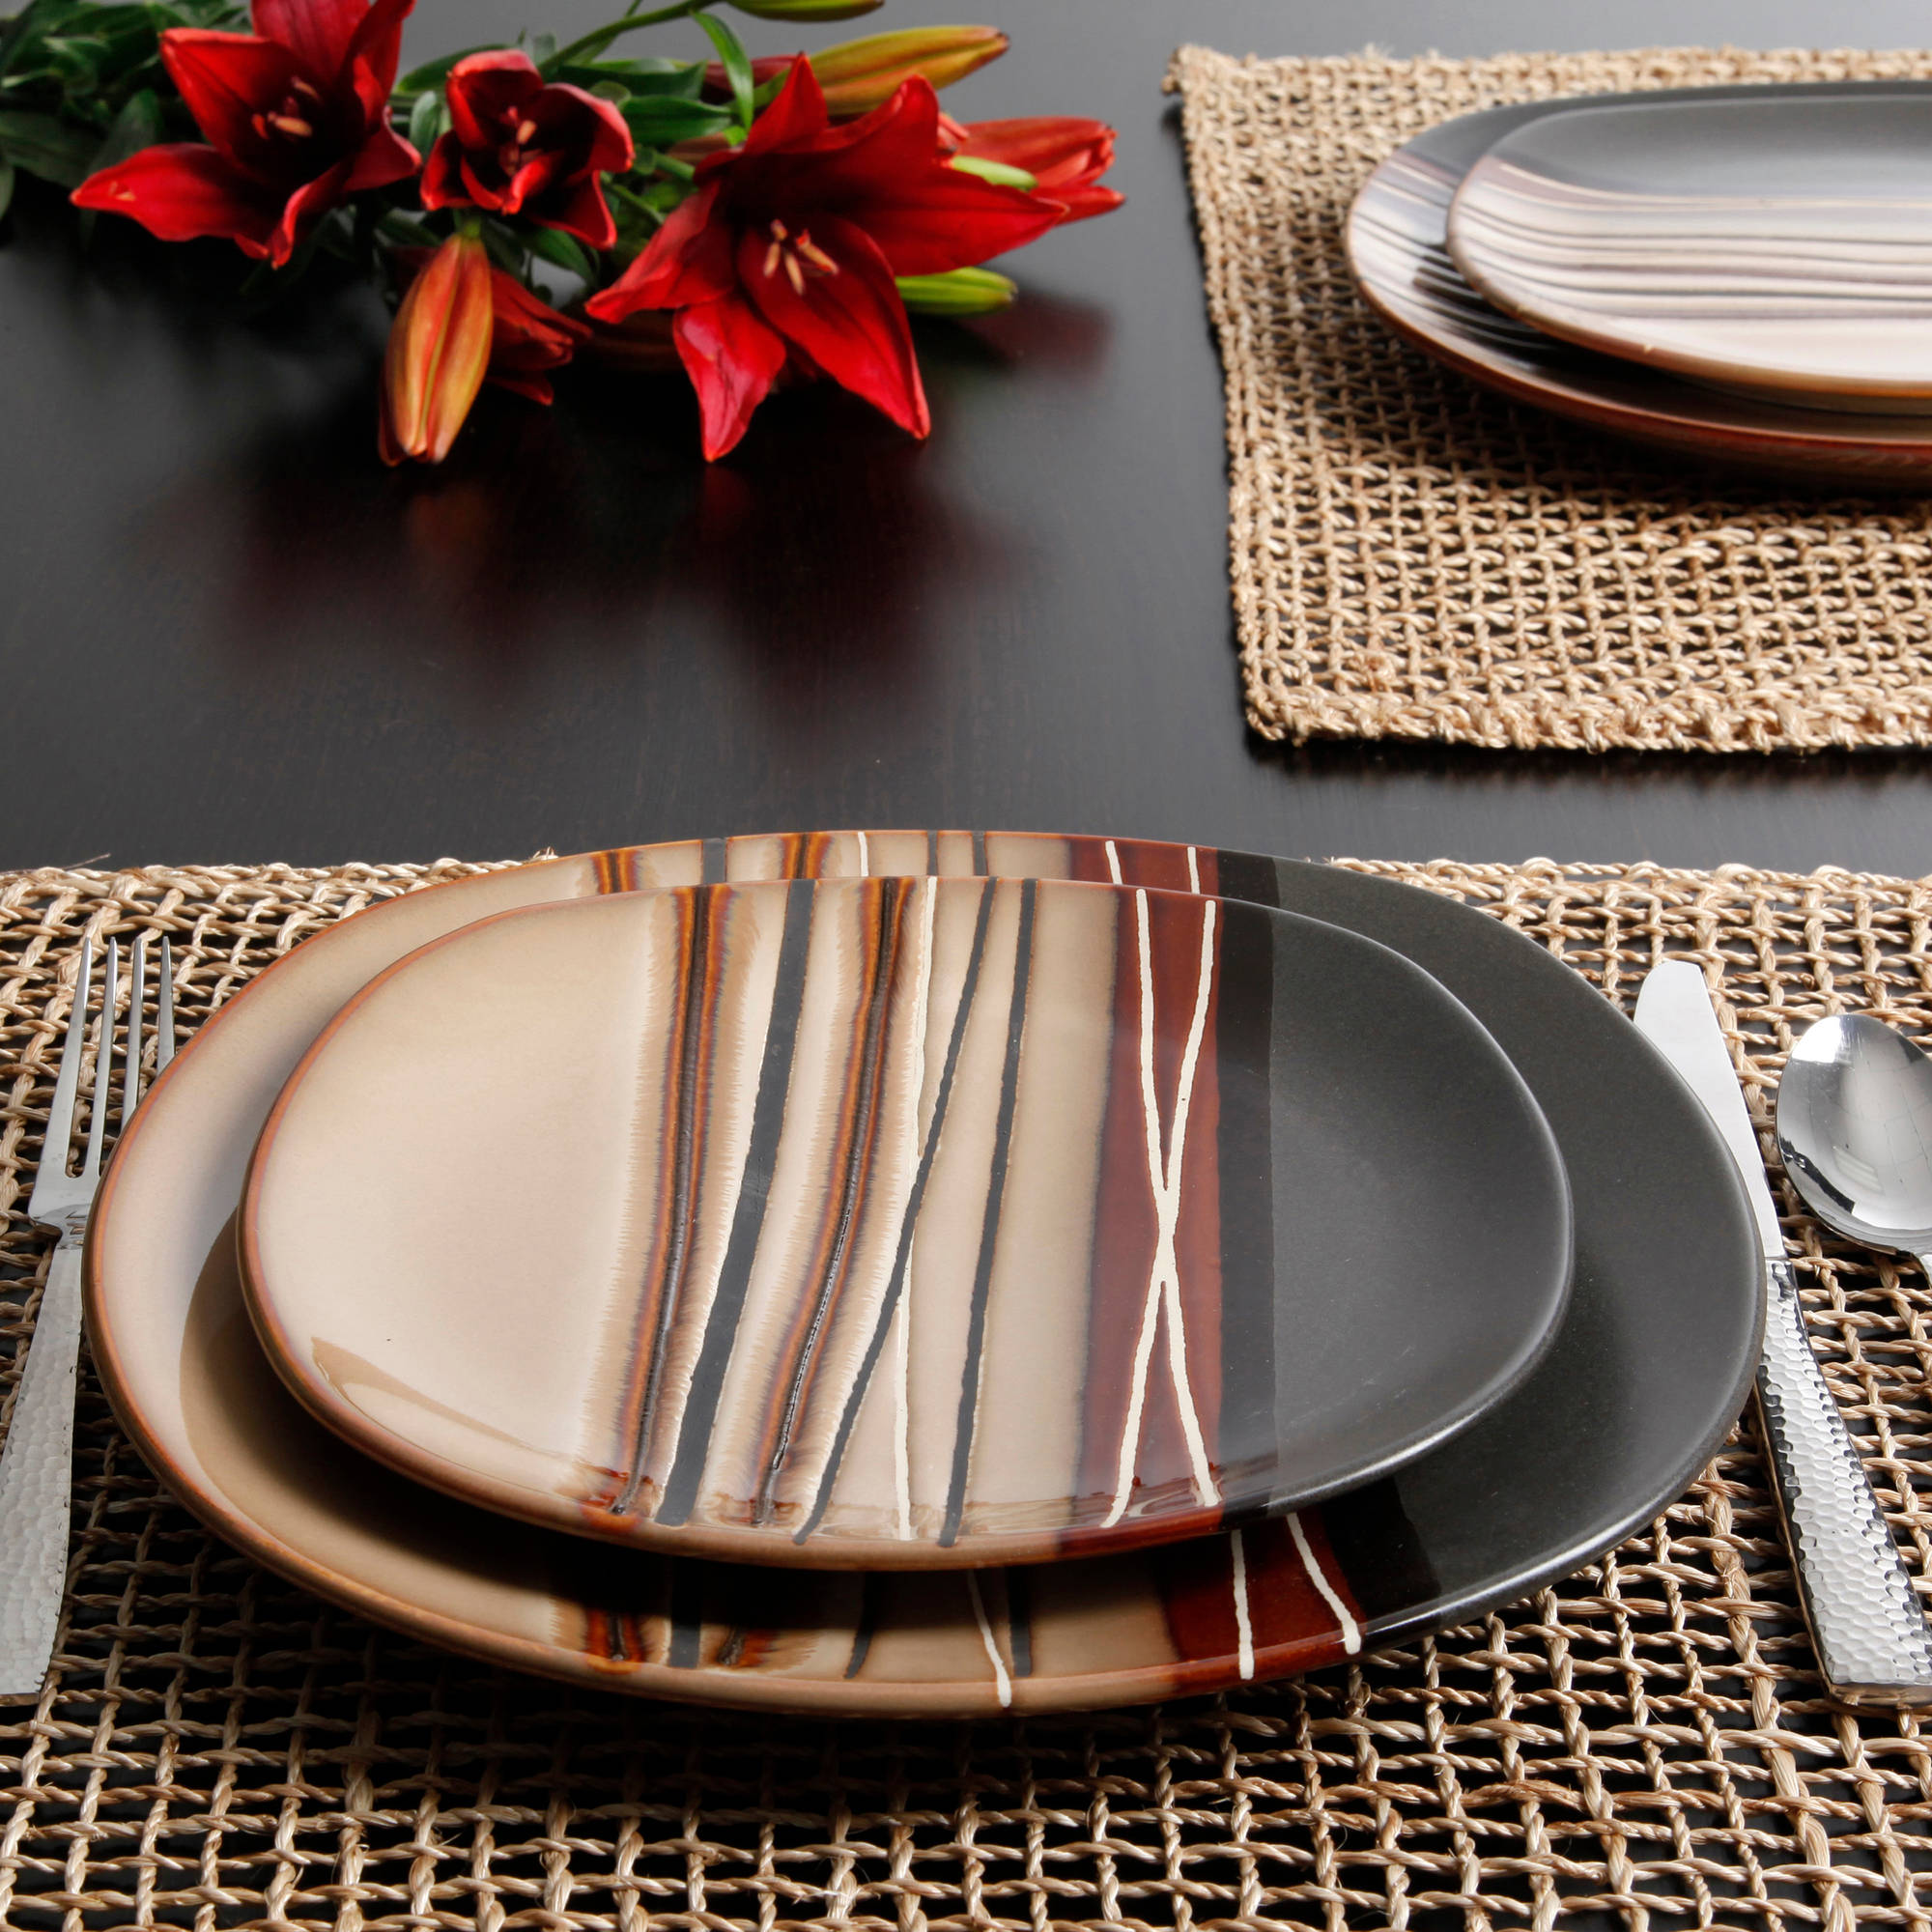 Stoneware Dinnerware Sets | 40 Piece Dinnerware Set | Mikasa Dinnerware Sets : mikasa dinnerware sets - pezcame.com